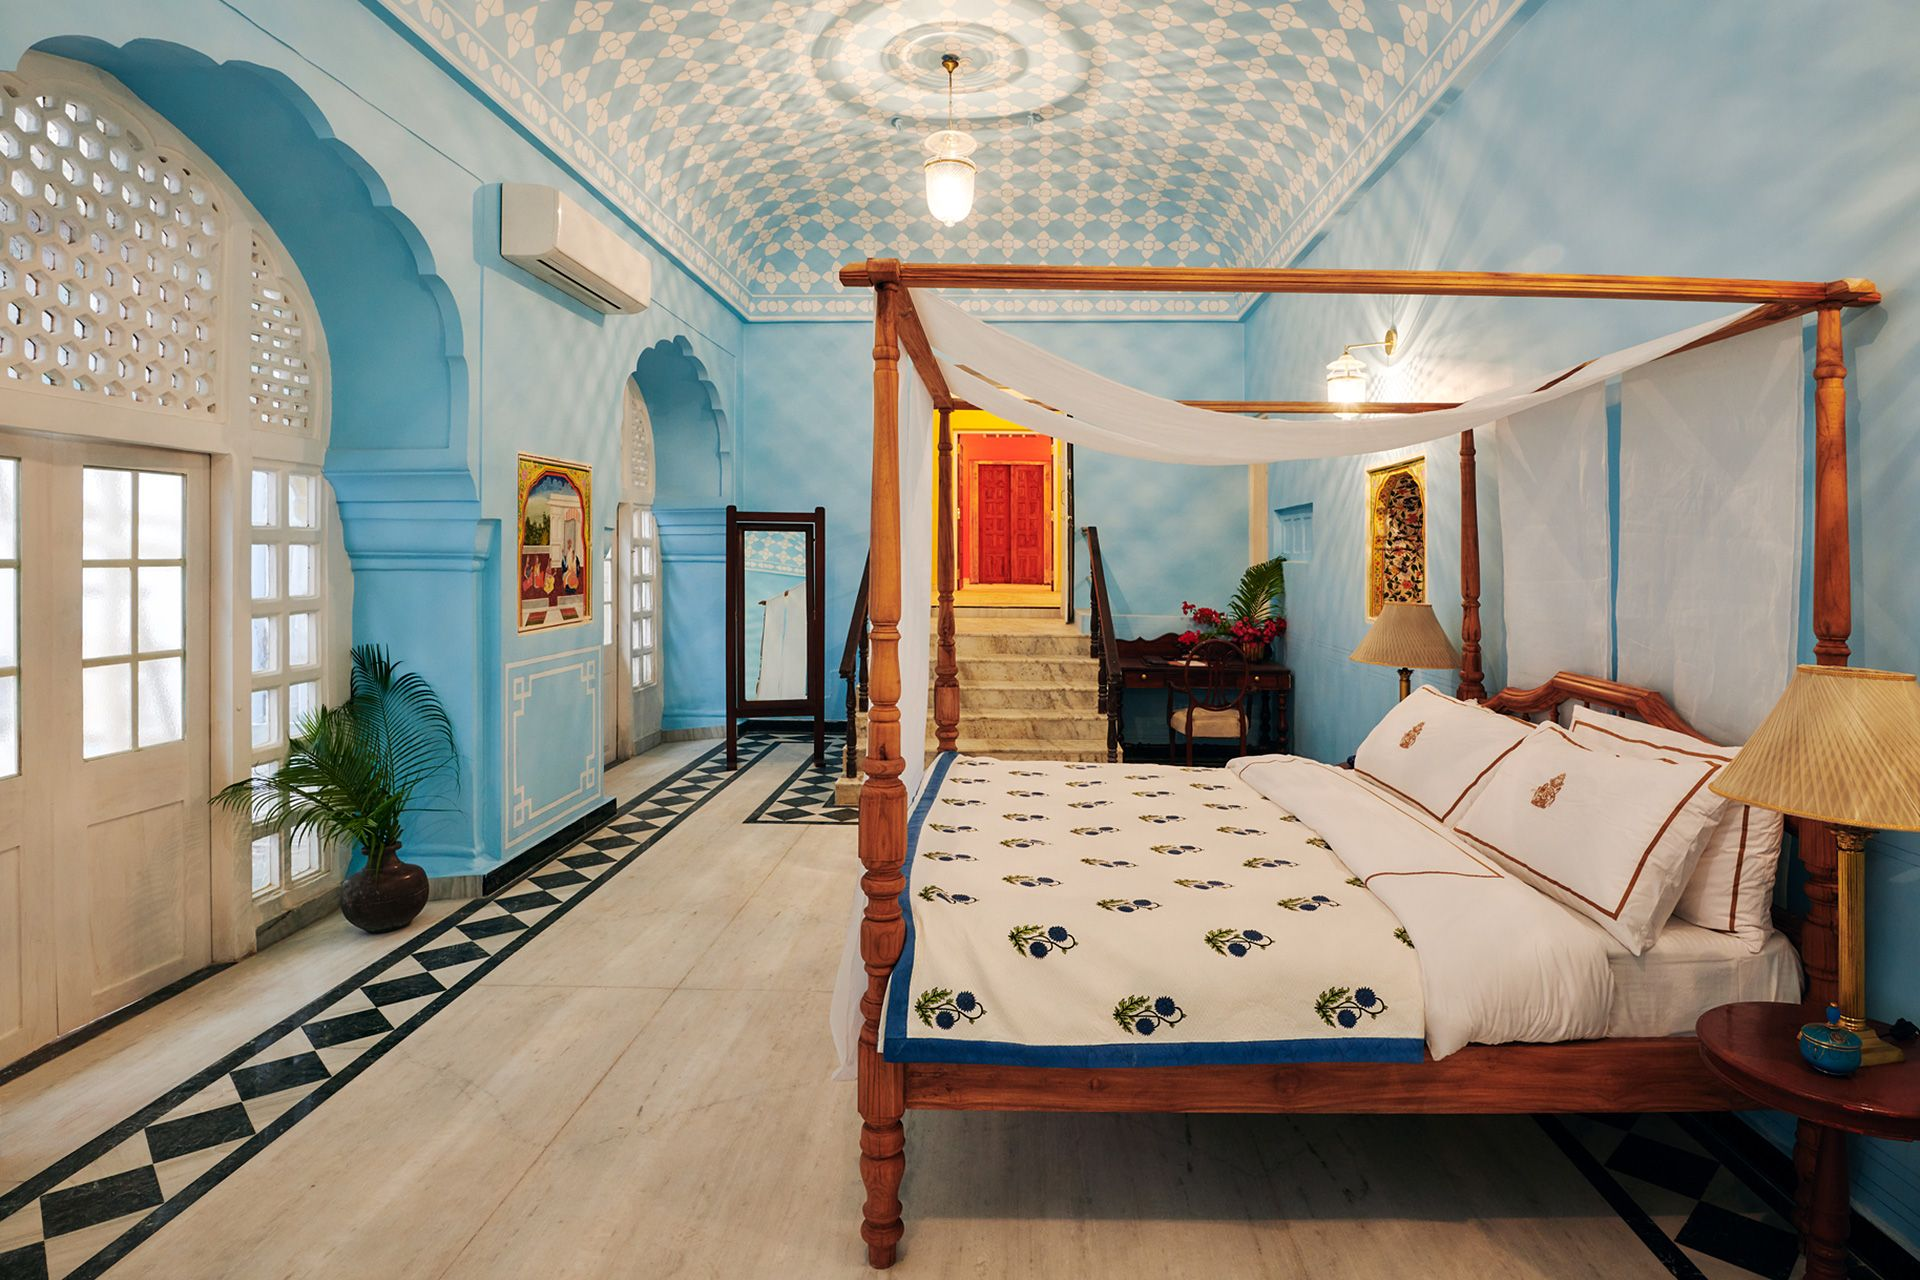 This Insane Airbnb Lets You Live Like a Maharaja